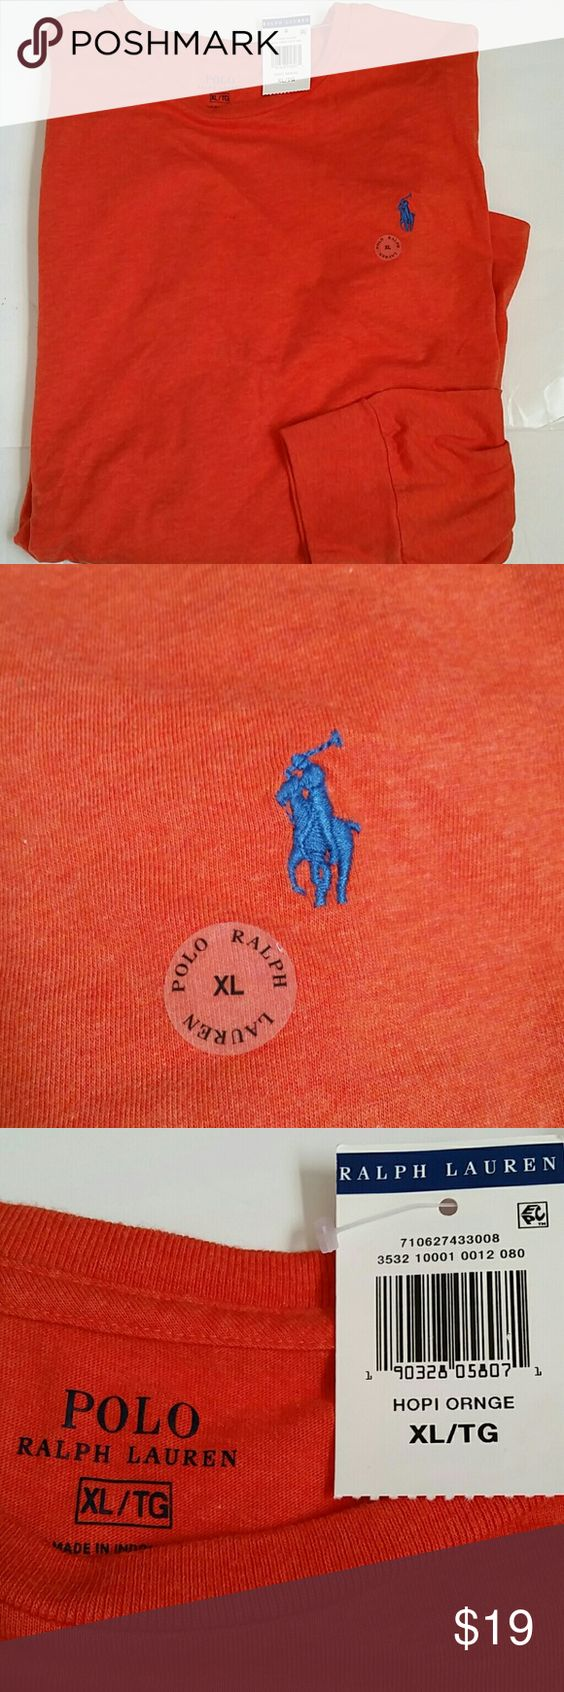 Polo Ralph Lauren men's long sleeve t shirt New with tags, classic fit   I do have bundle discount, other than that all prices are firm!  No low balls please :) Polo by Ralph Lauren Shirts Tees - Long Sleeve